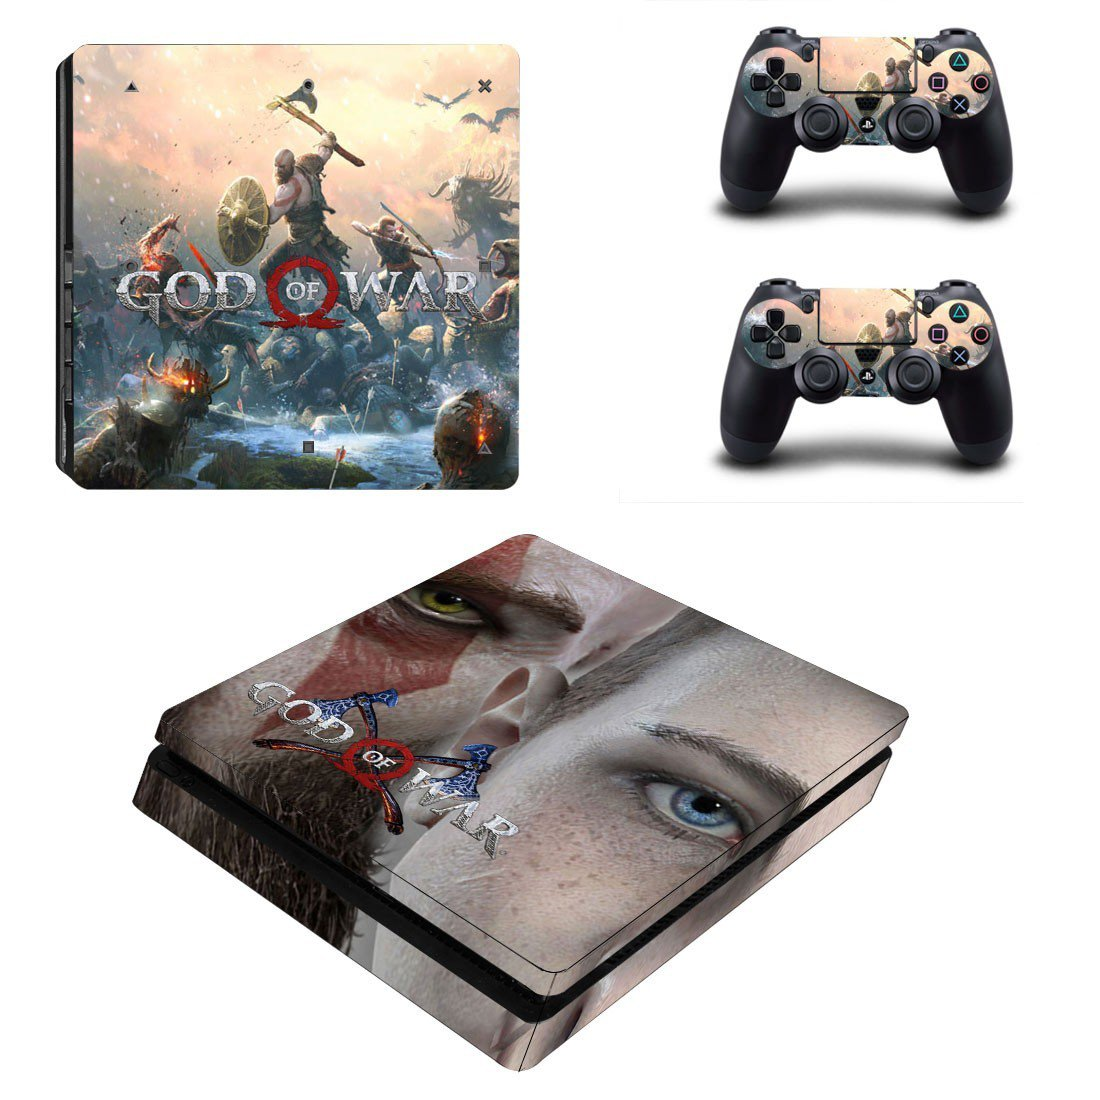 God of War 4 decal skin sticker for PS4 Slim console and controllers